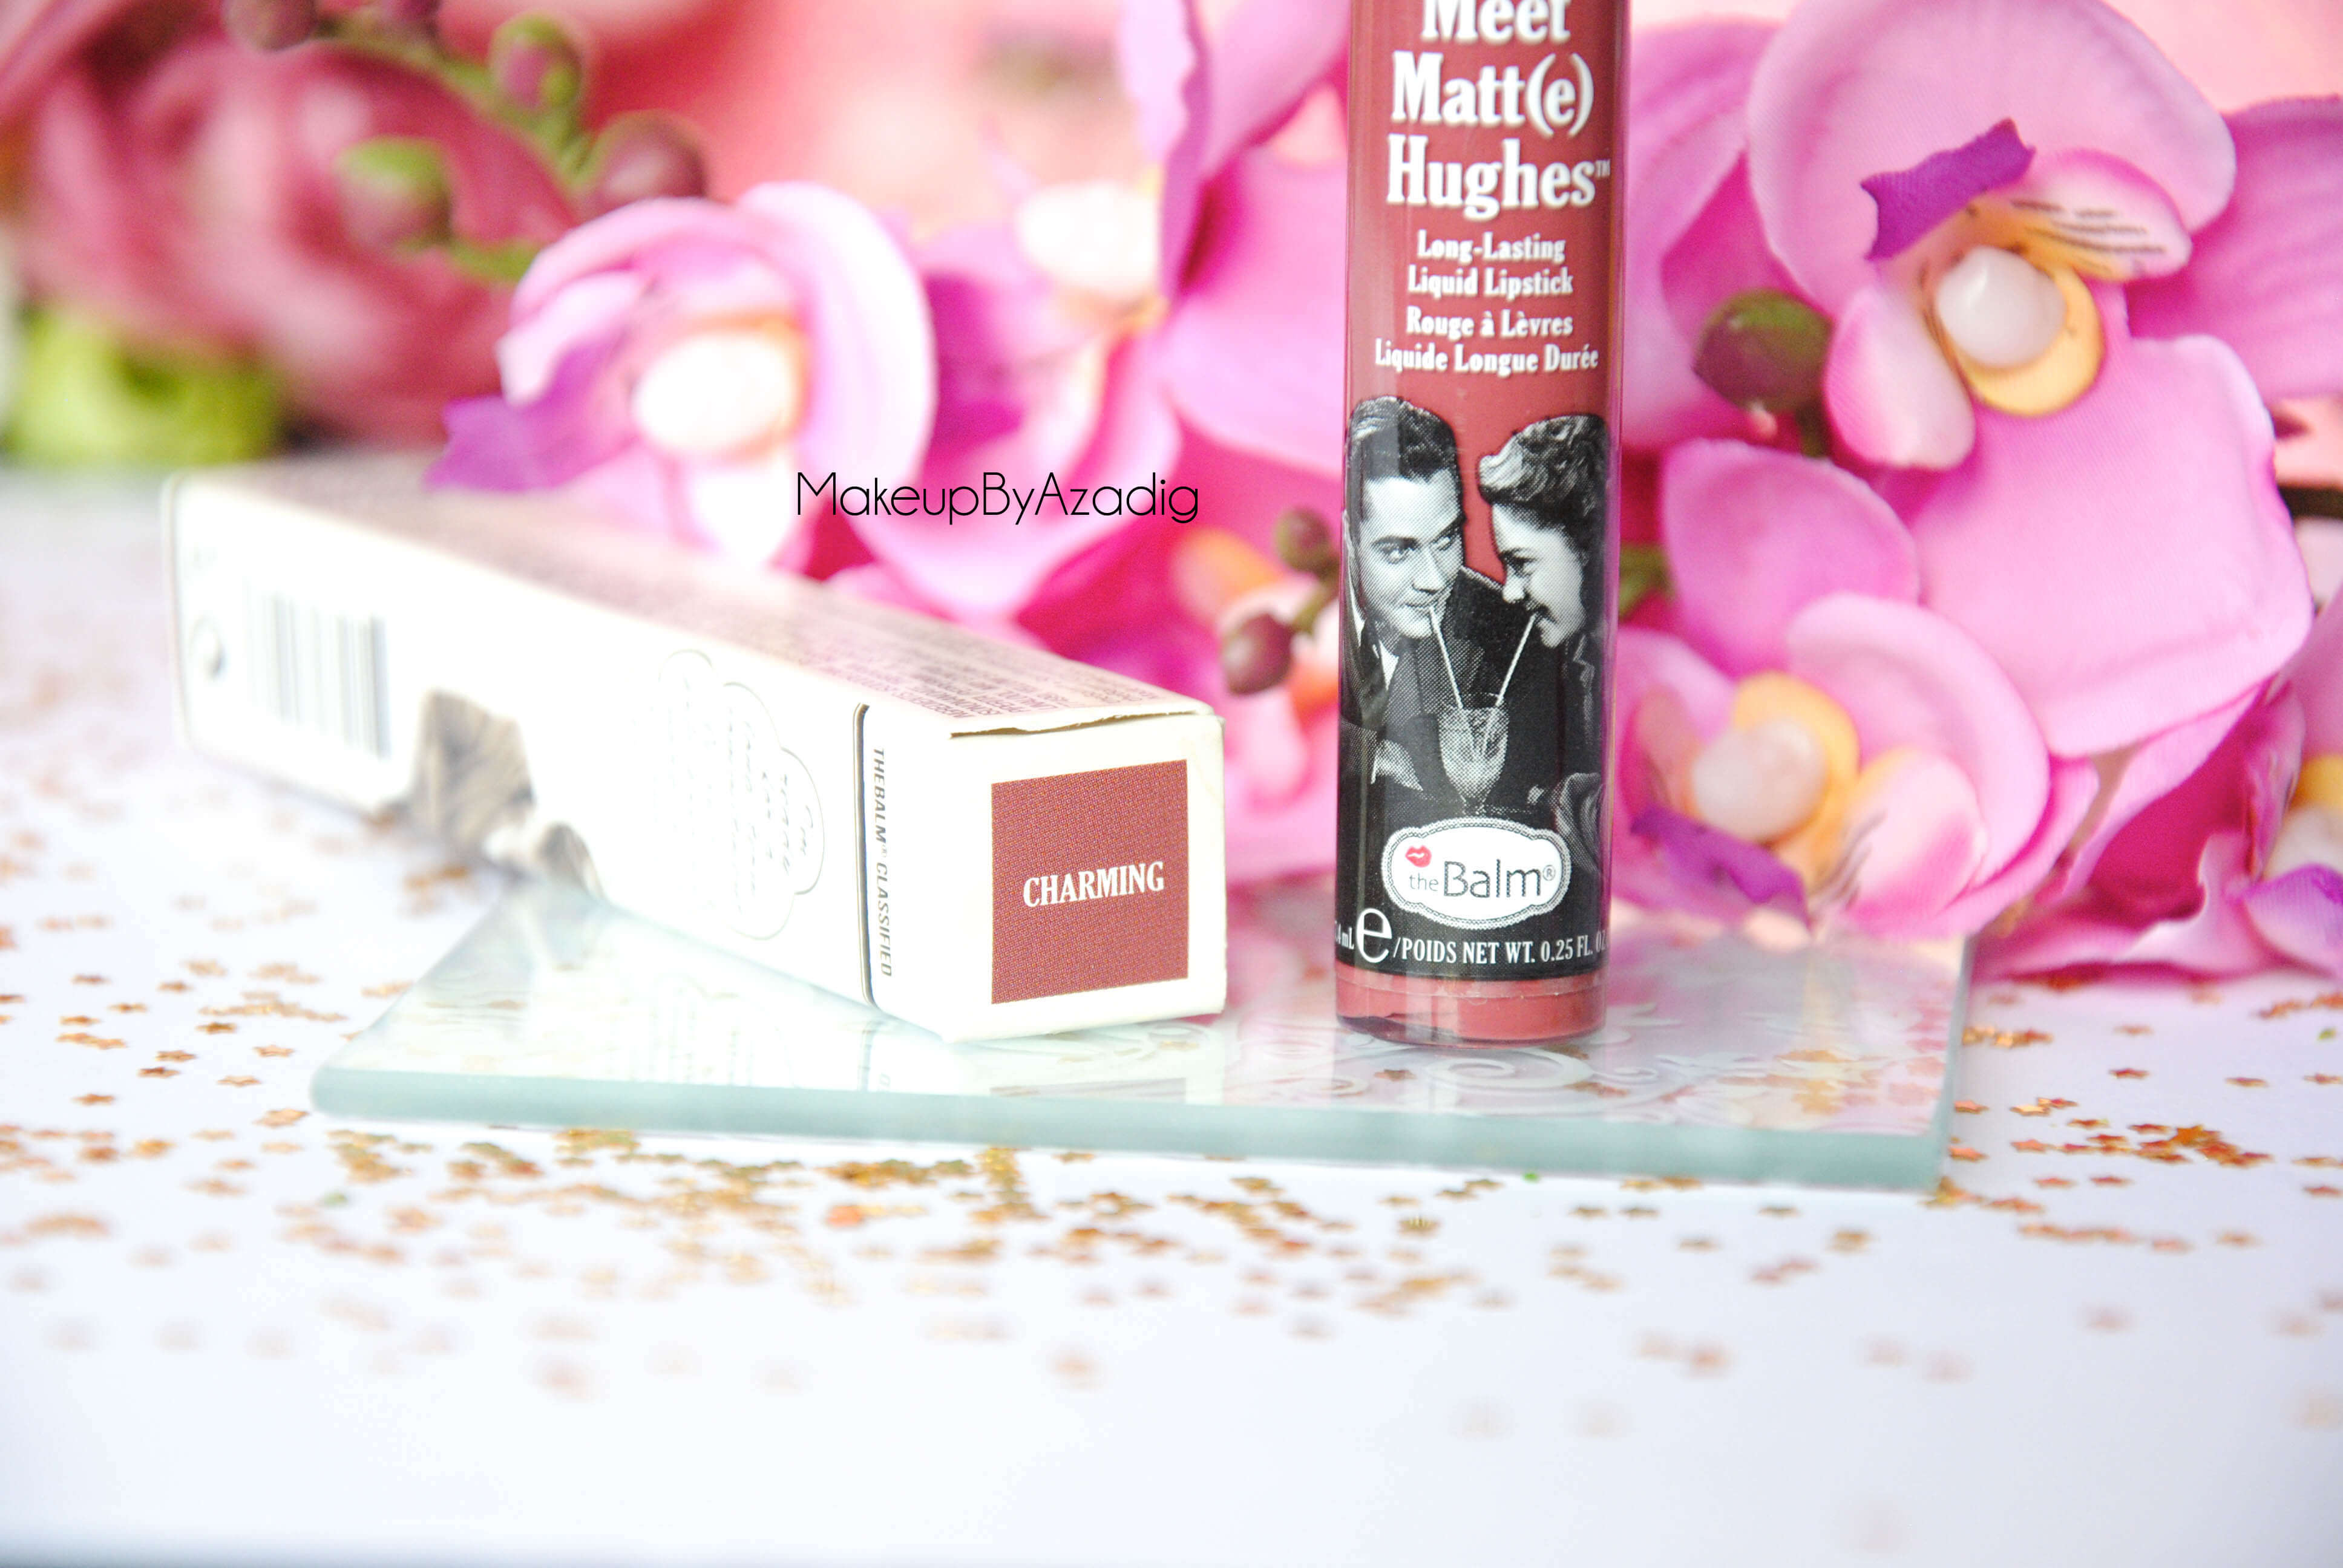 meet-matte-hughes-the-balm-charming-makeupbyazadig-troyes-paris-rouge-levres-liquide-swatch-review-avis-teinte